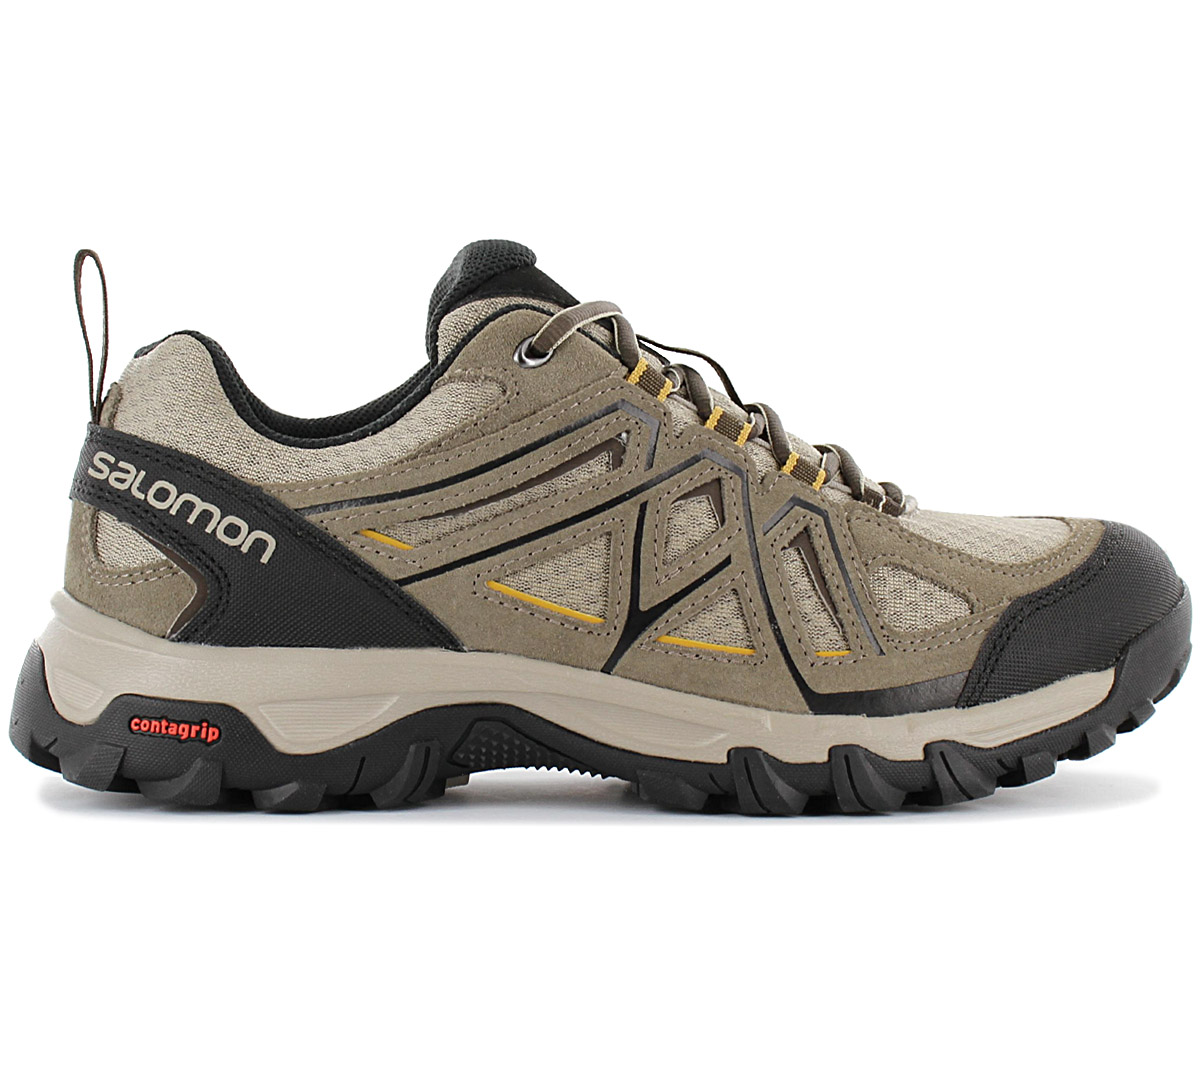 Details about Salomon Evasion 2 Aero Men's Hiking Shoes 393599 Beige Trekking Shoes New